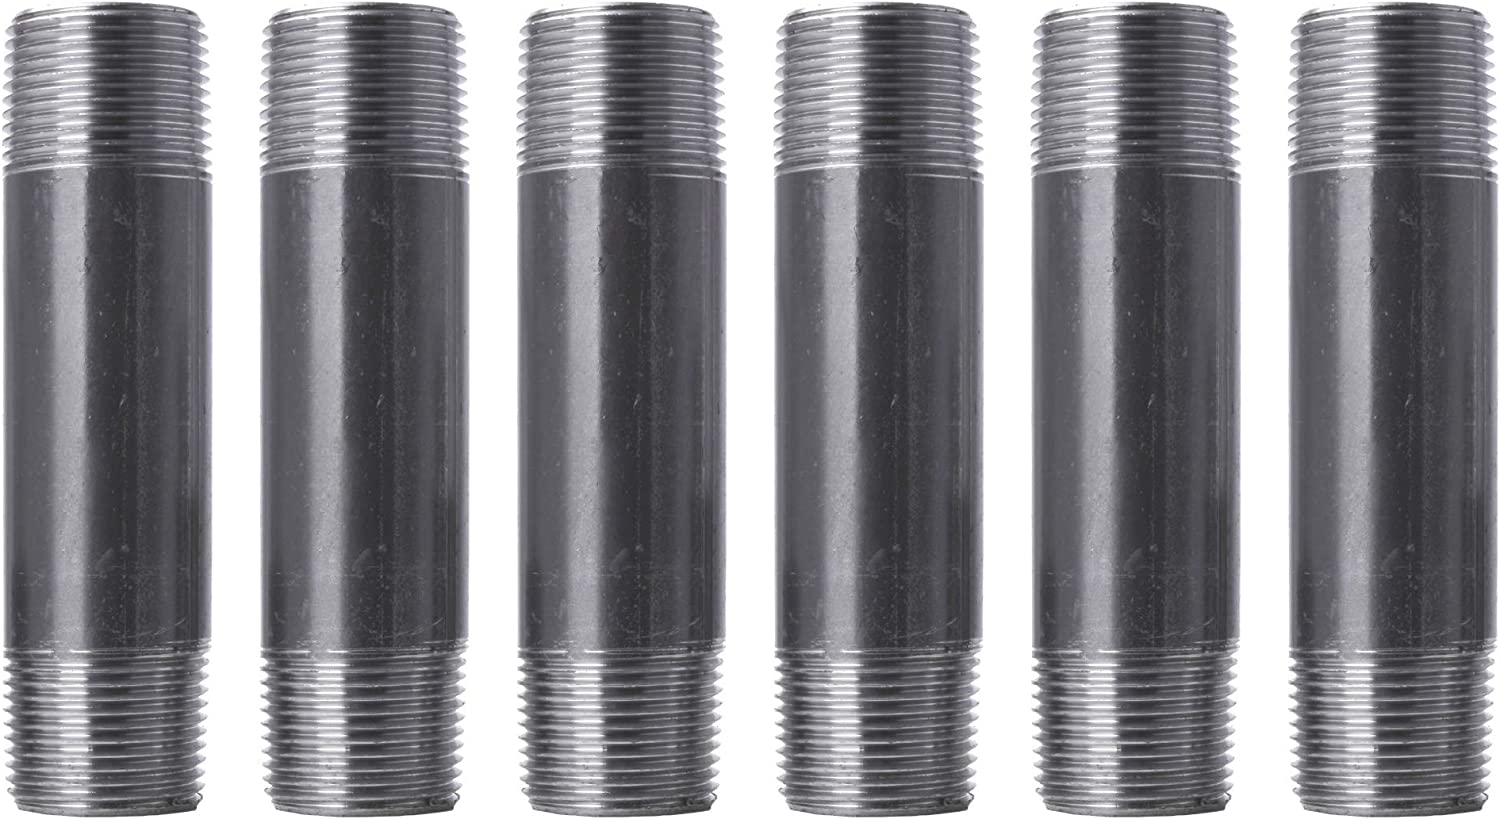 """Pipe Decor 1"""" x 5"""" Malleable Cast Iron Pipe, Pre Cut Connector, Industrial Steel Grey Fits Standard One Inch Black Threaded Pipes Nipples and Fittings, Build Vintage DIY Furniture, One Inch, 6 Pack"""